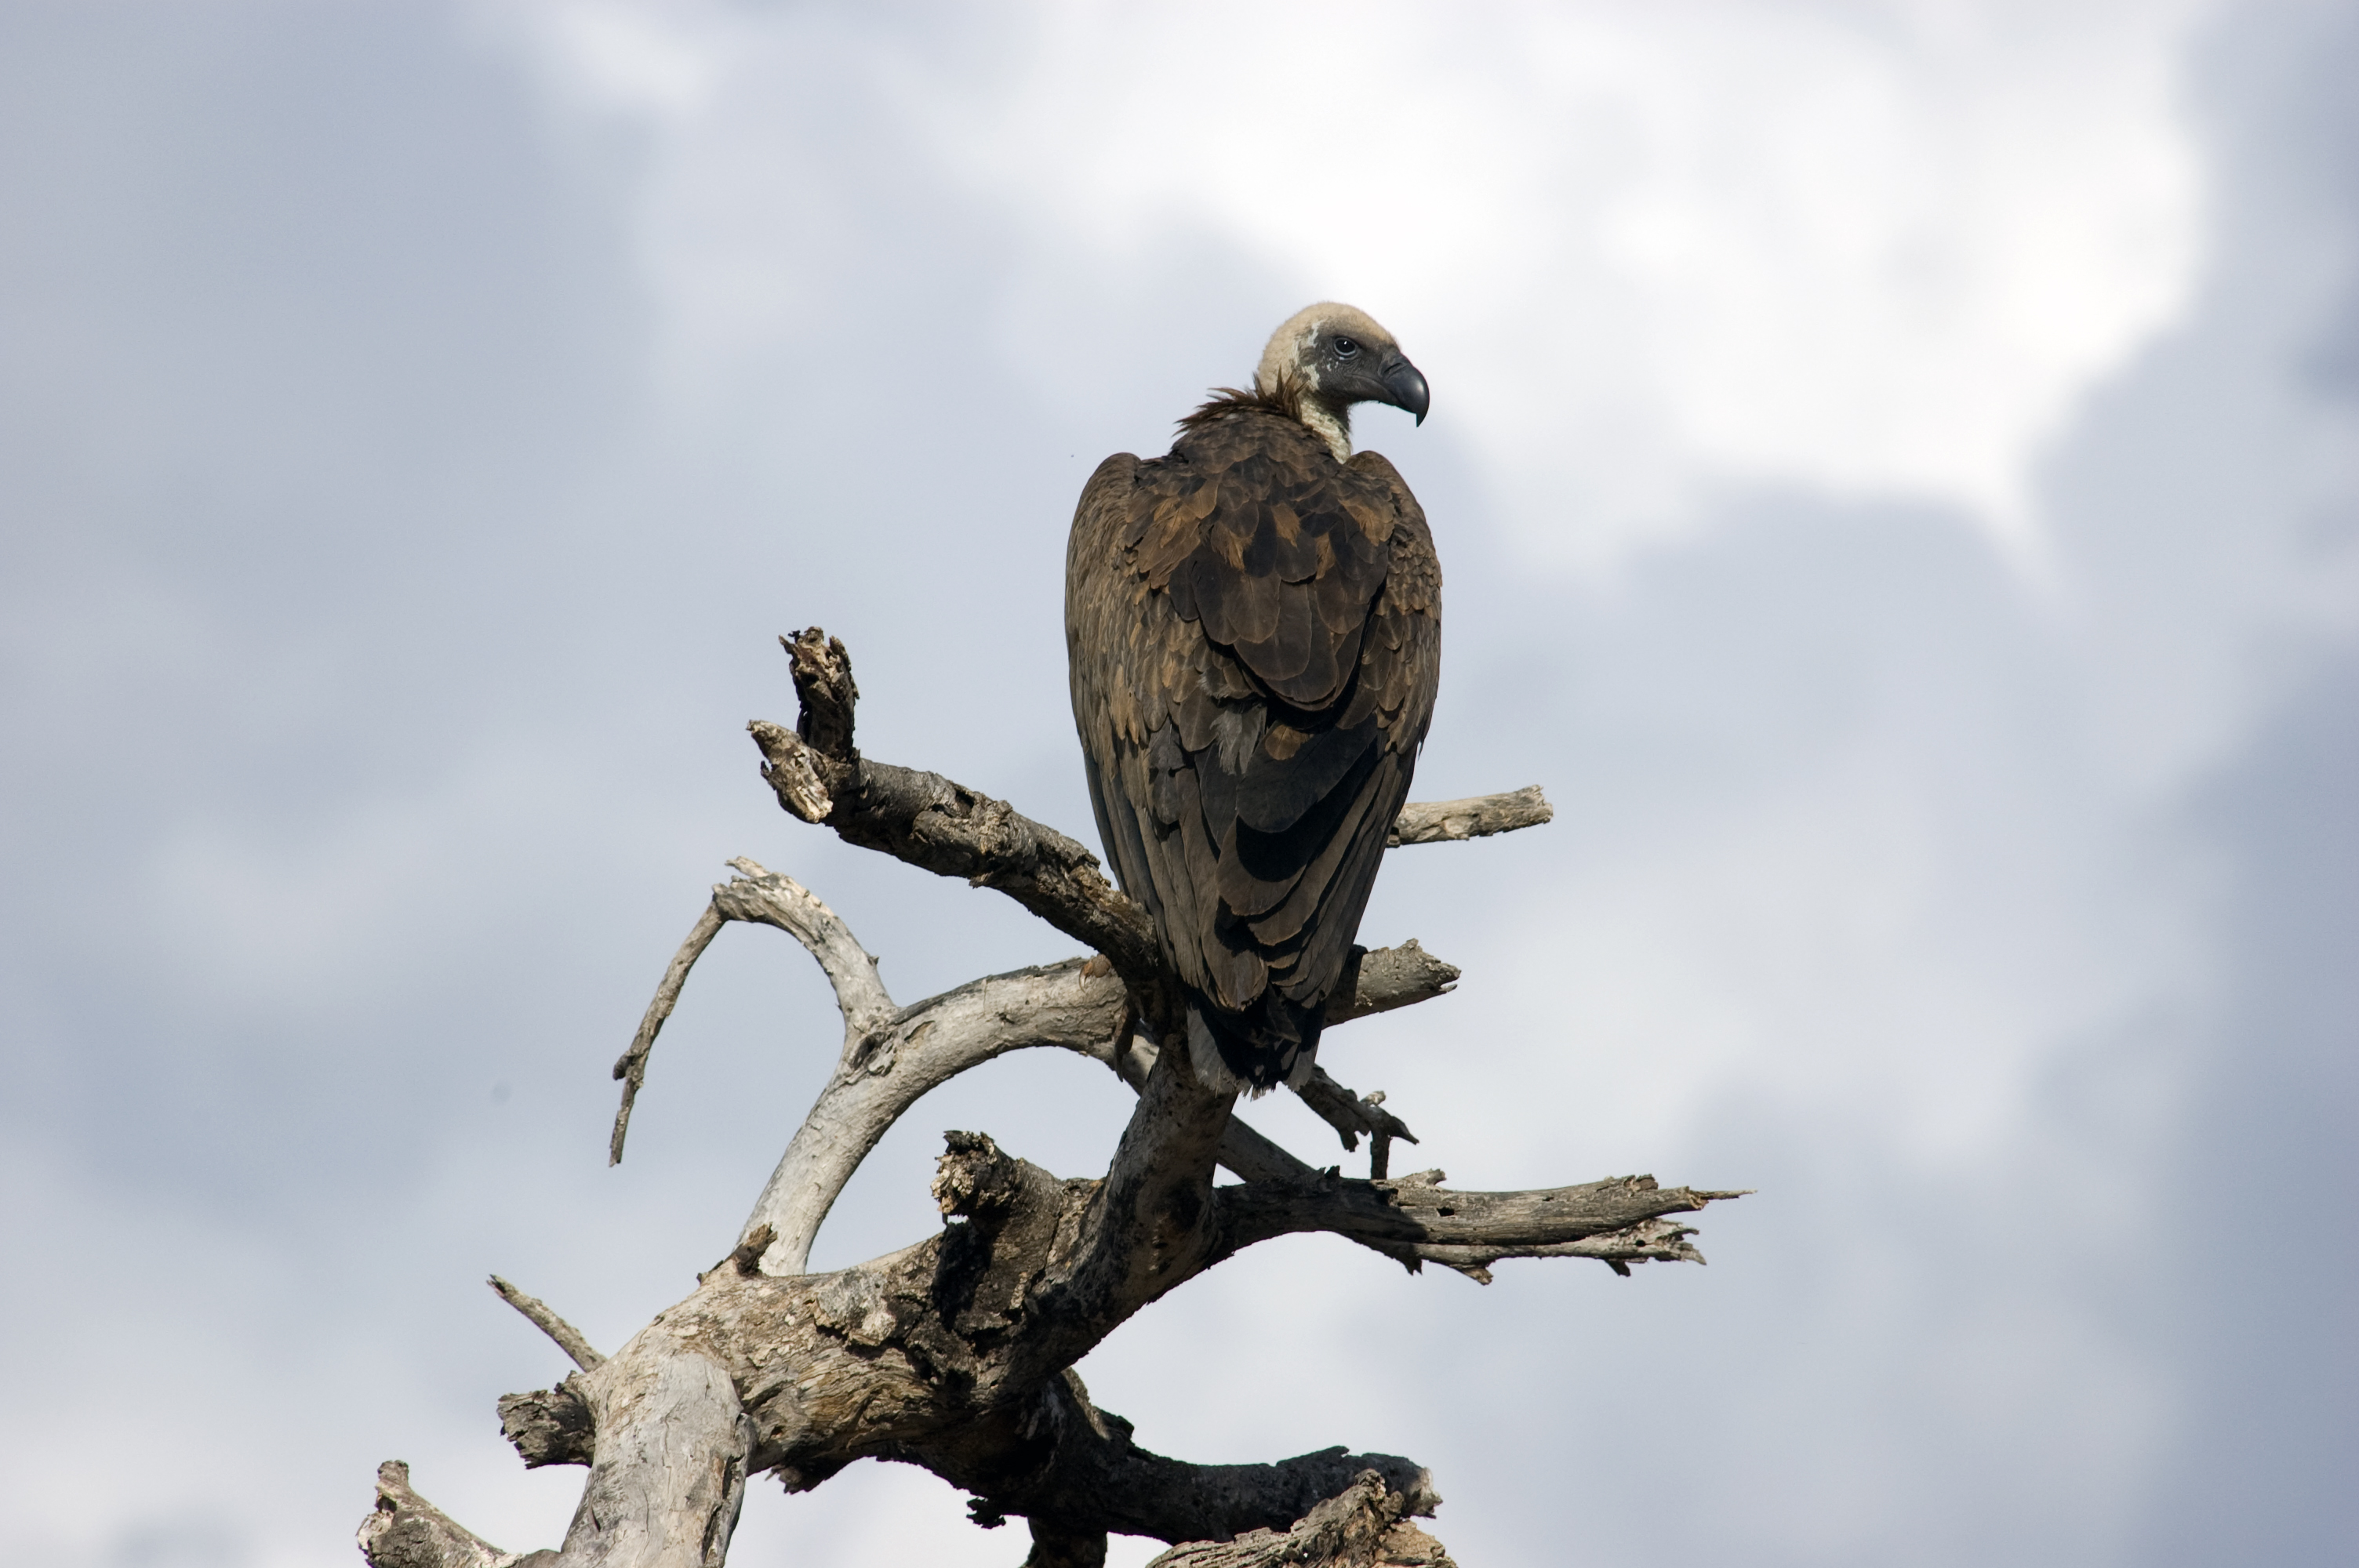 Vulture in Kenya under stormy skies Photo: William Hentley